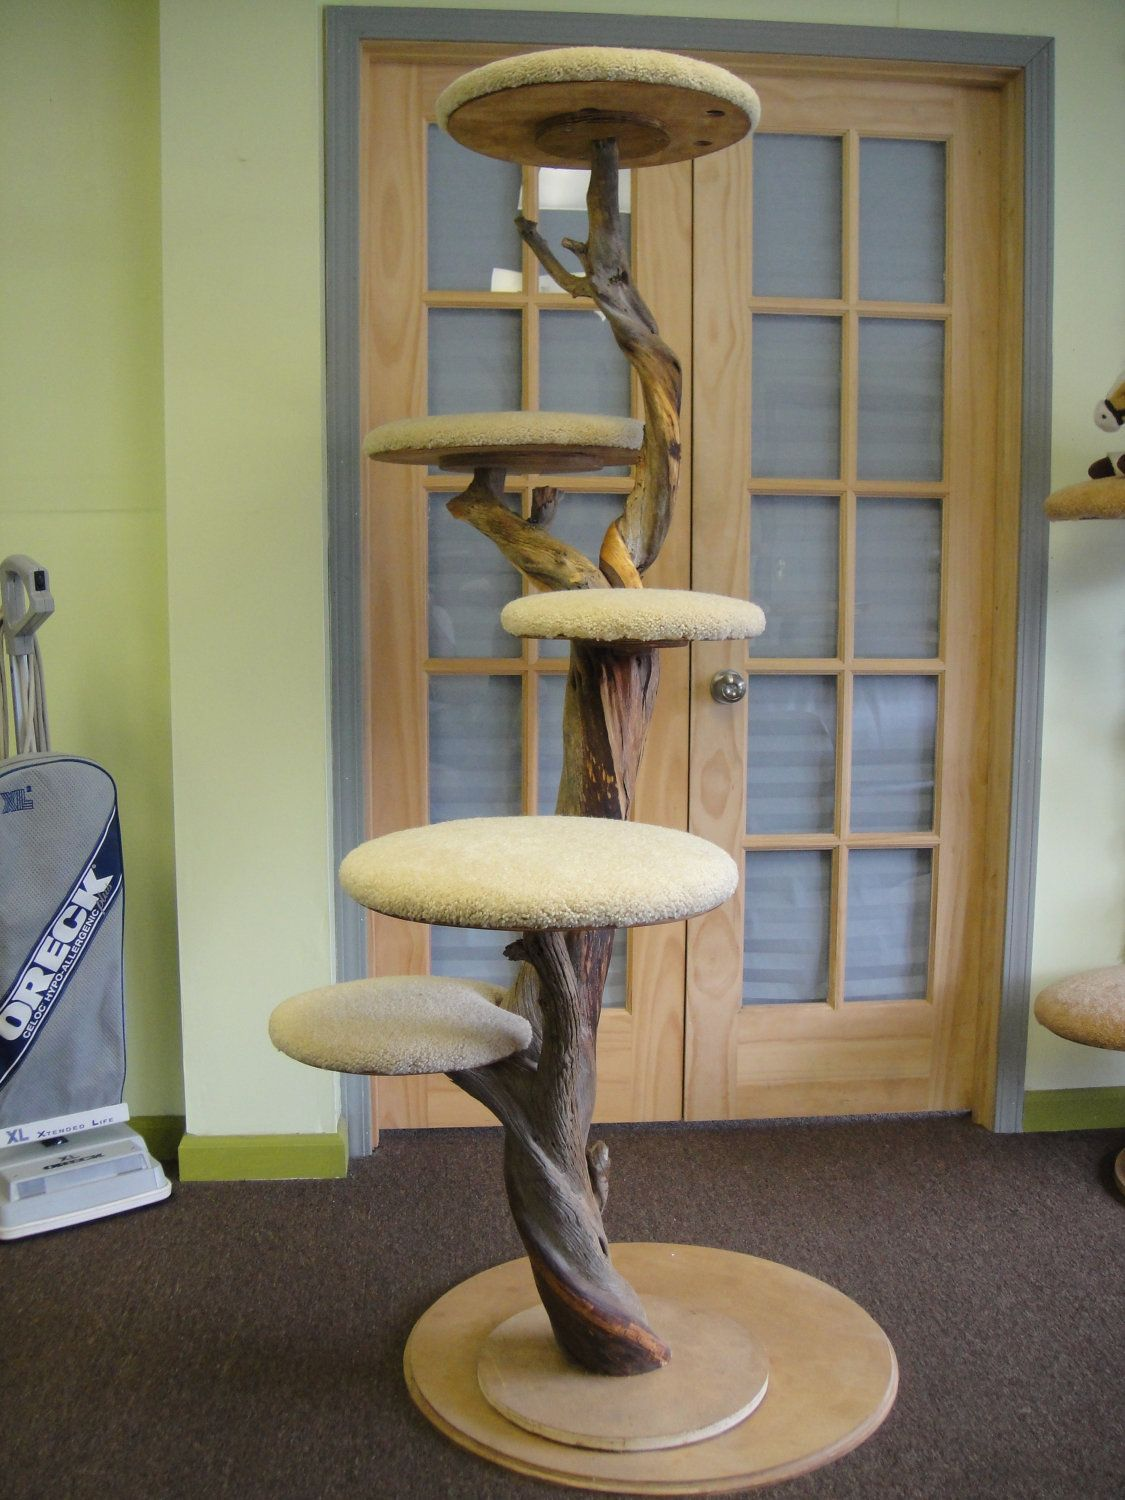 This item sold on August 16, 2011. treecondo